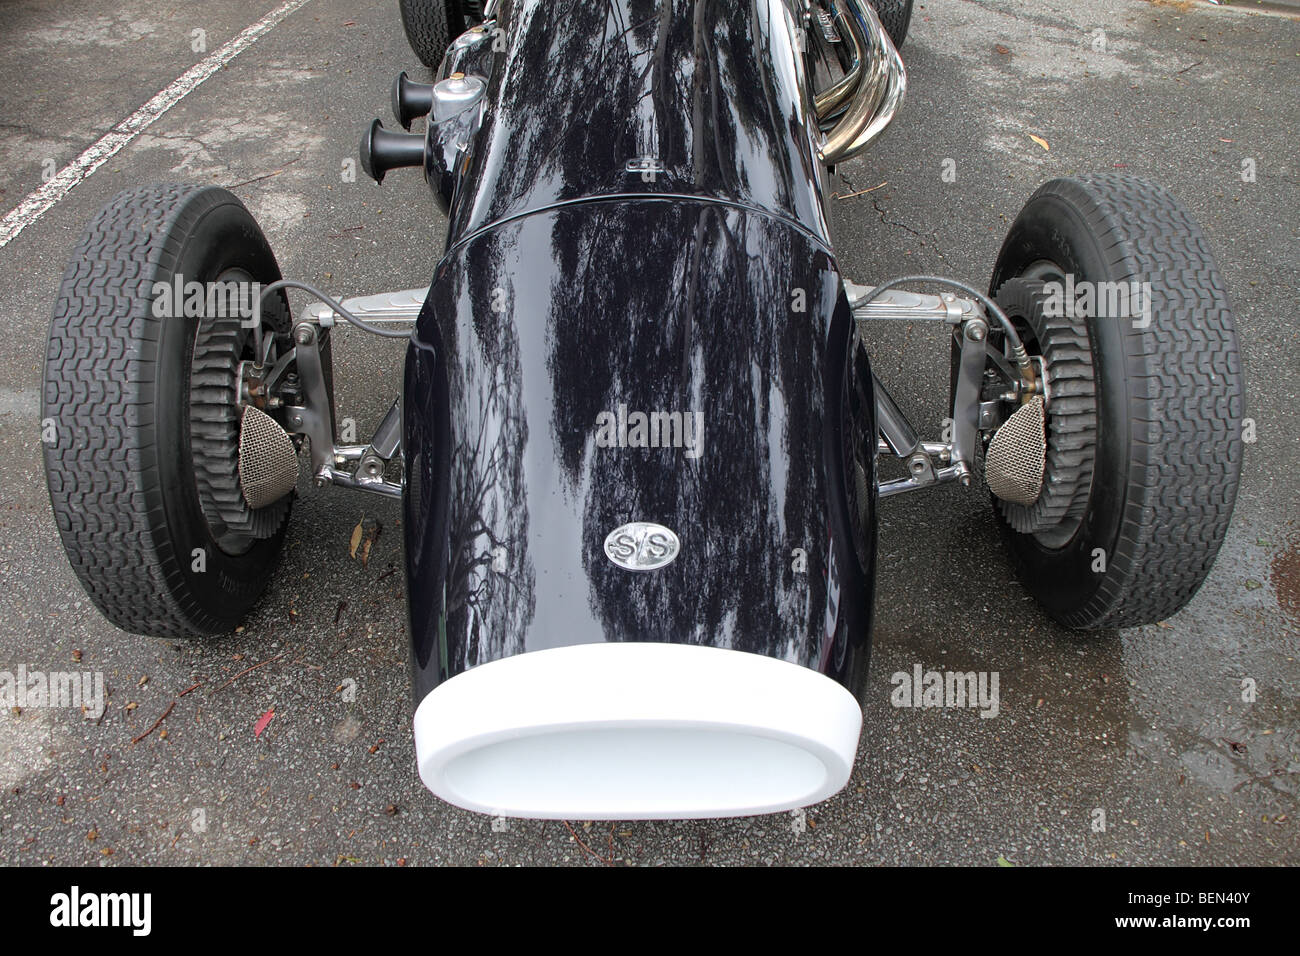 Motorcar Tyres Stock Photos & Motorcar Tyres Stock Images